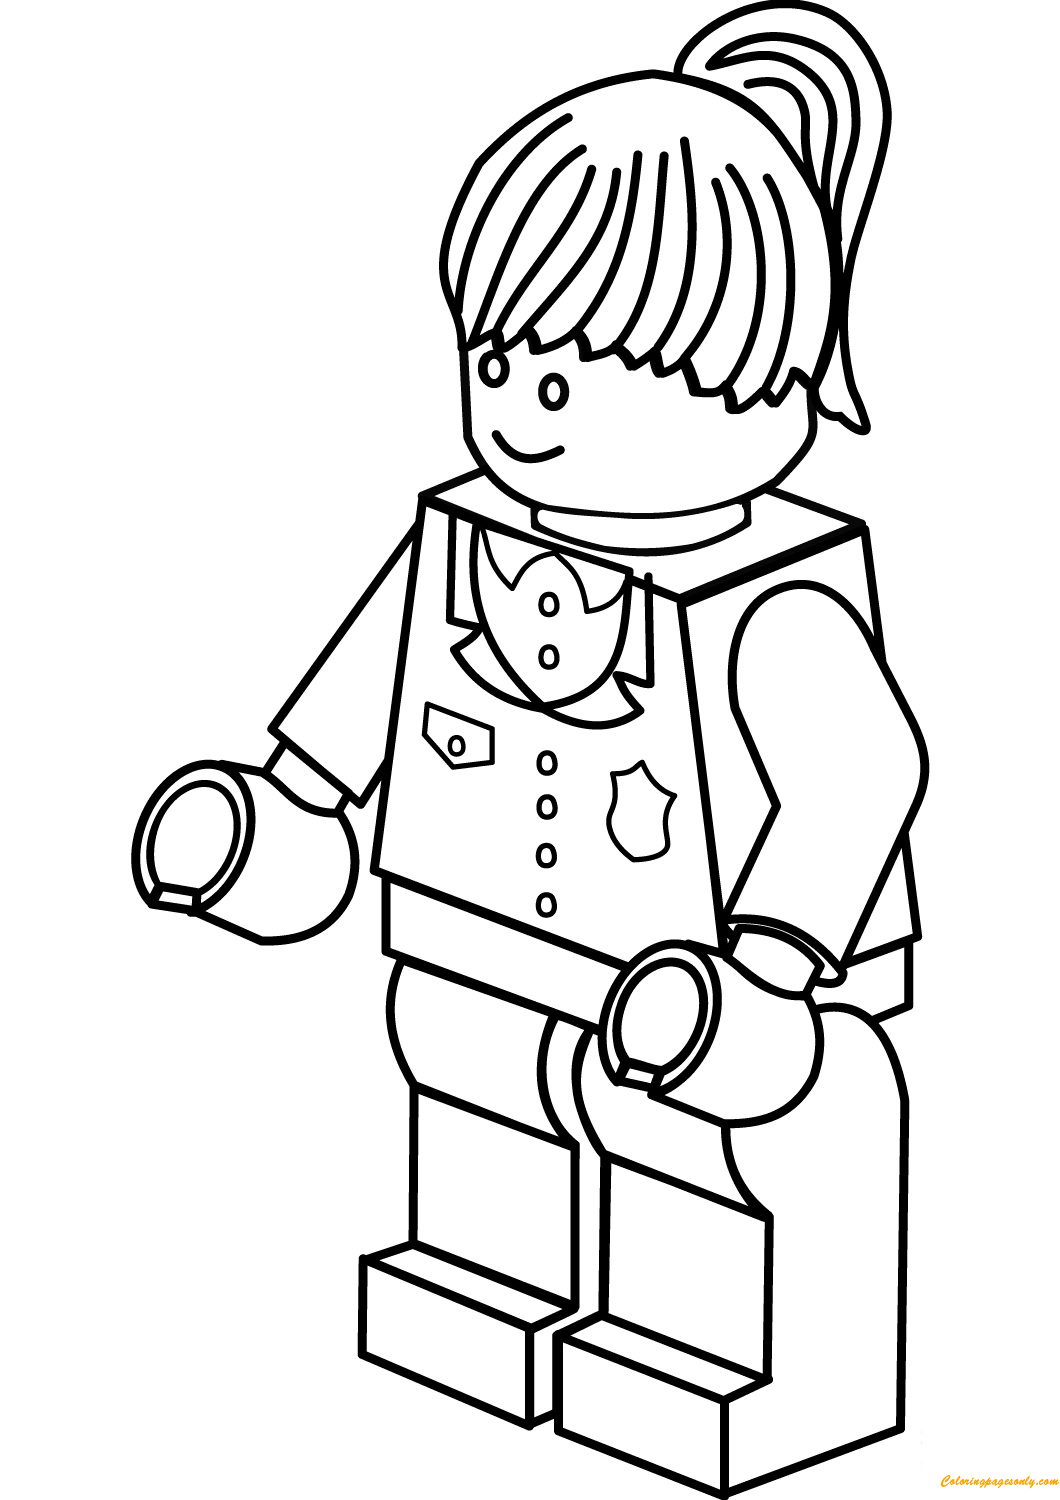 Lego city police woman coloring page free coloring pages for Lego city police coloring pages